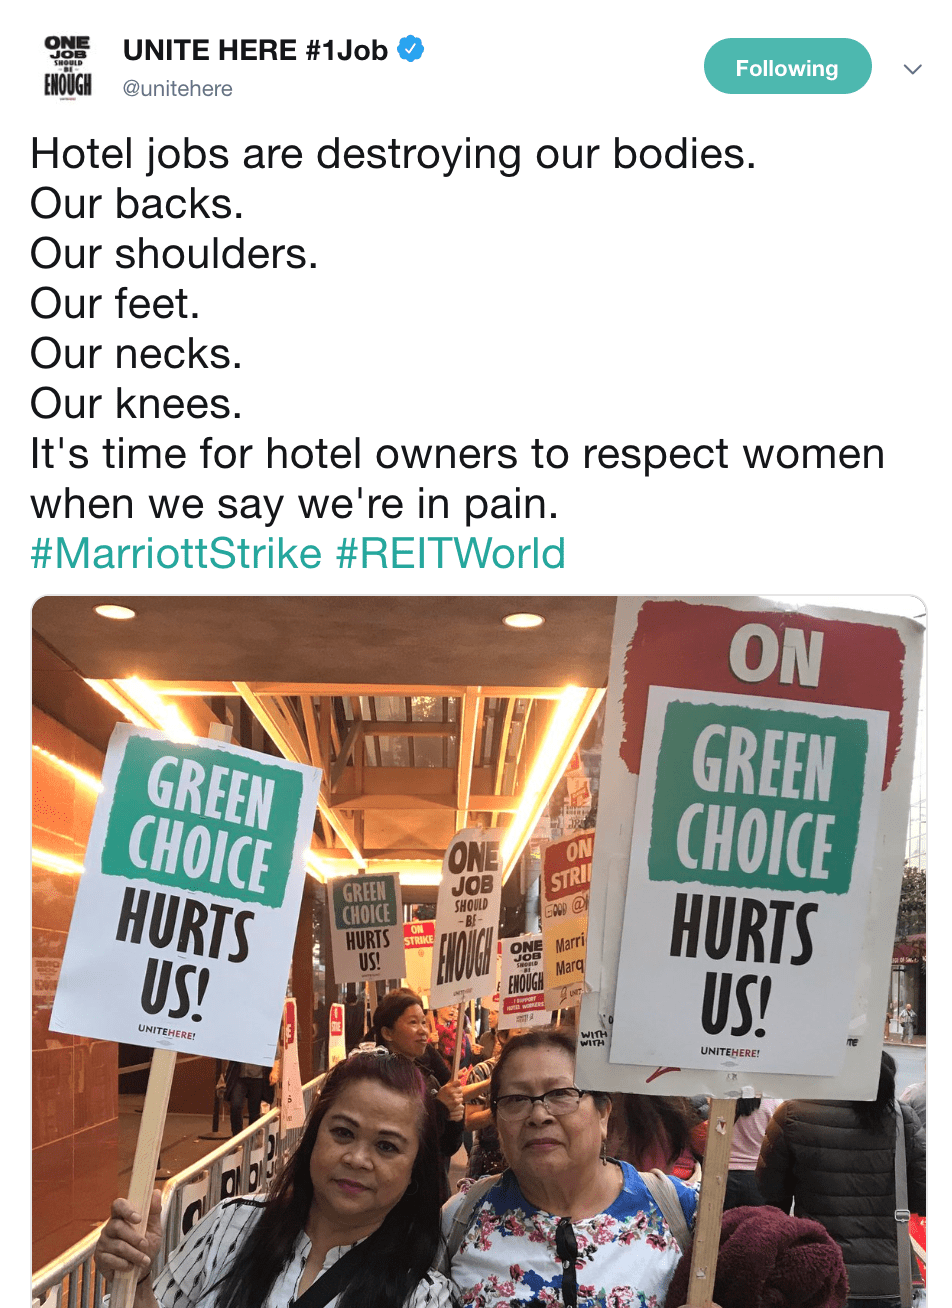 Screenshot of a tweet from the @unitehere Twitter account